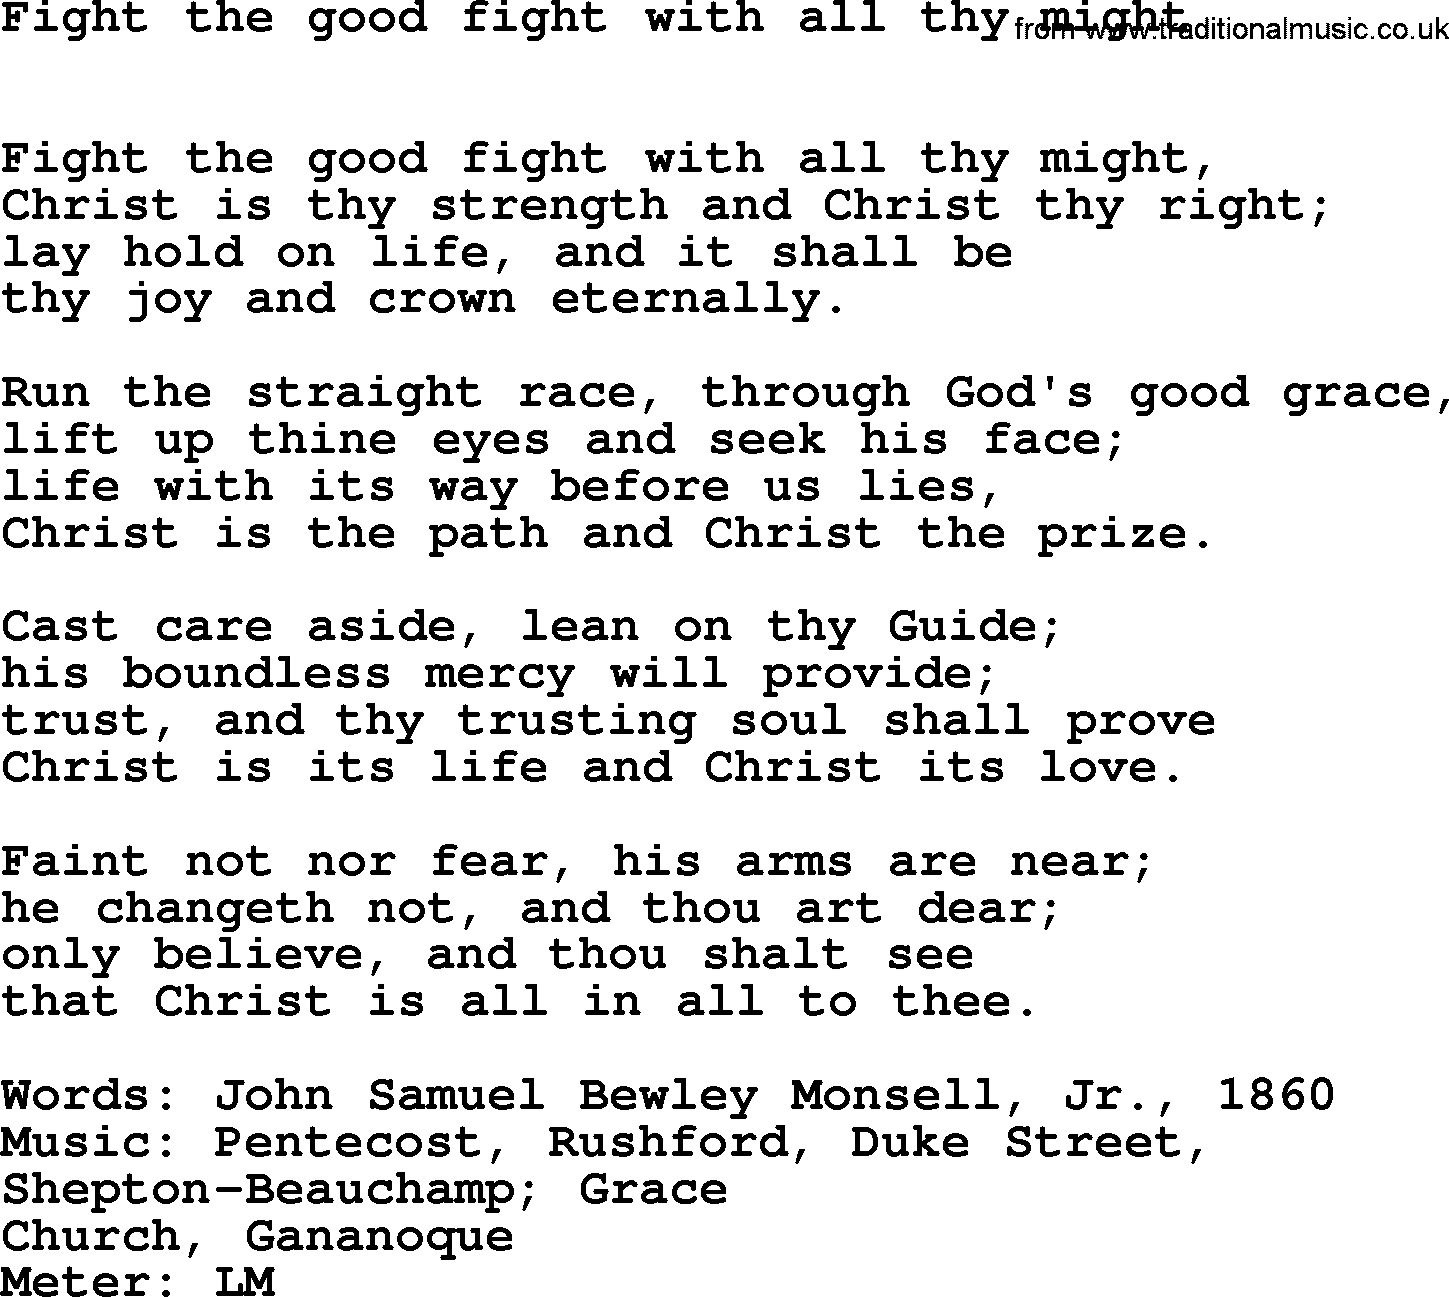 Modern Music Words: Hymns Ancient And Modern, Song: Fight The Good Fight With